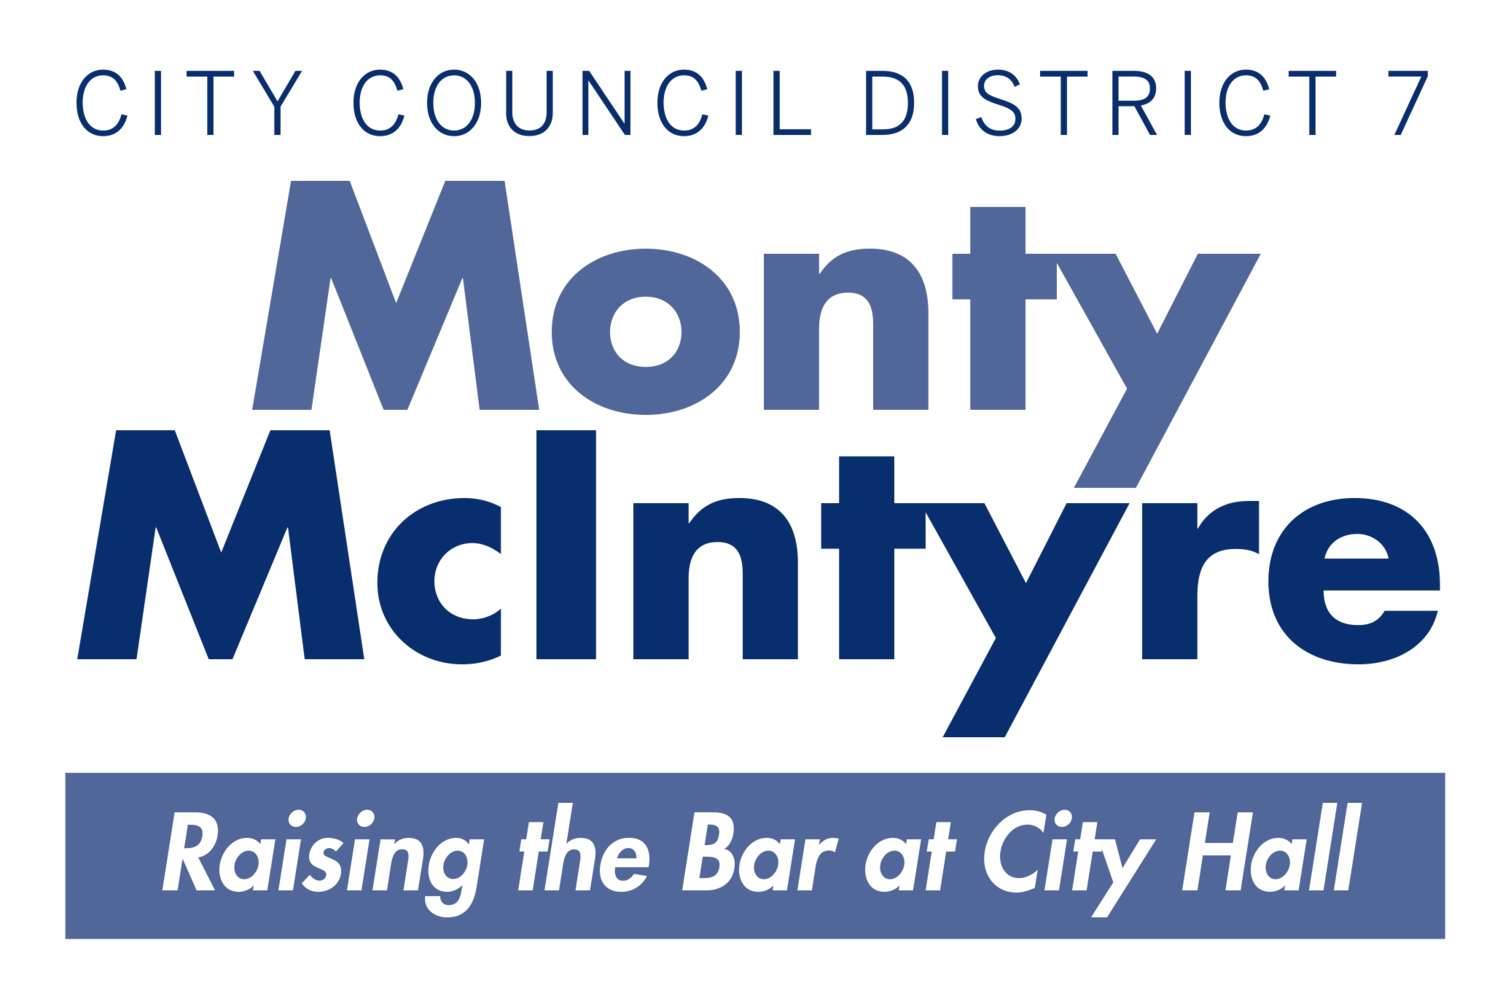 Monty McIntyre for City Council 2020